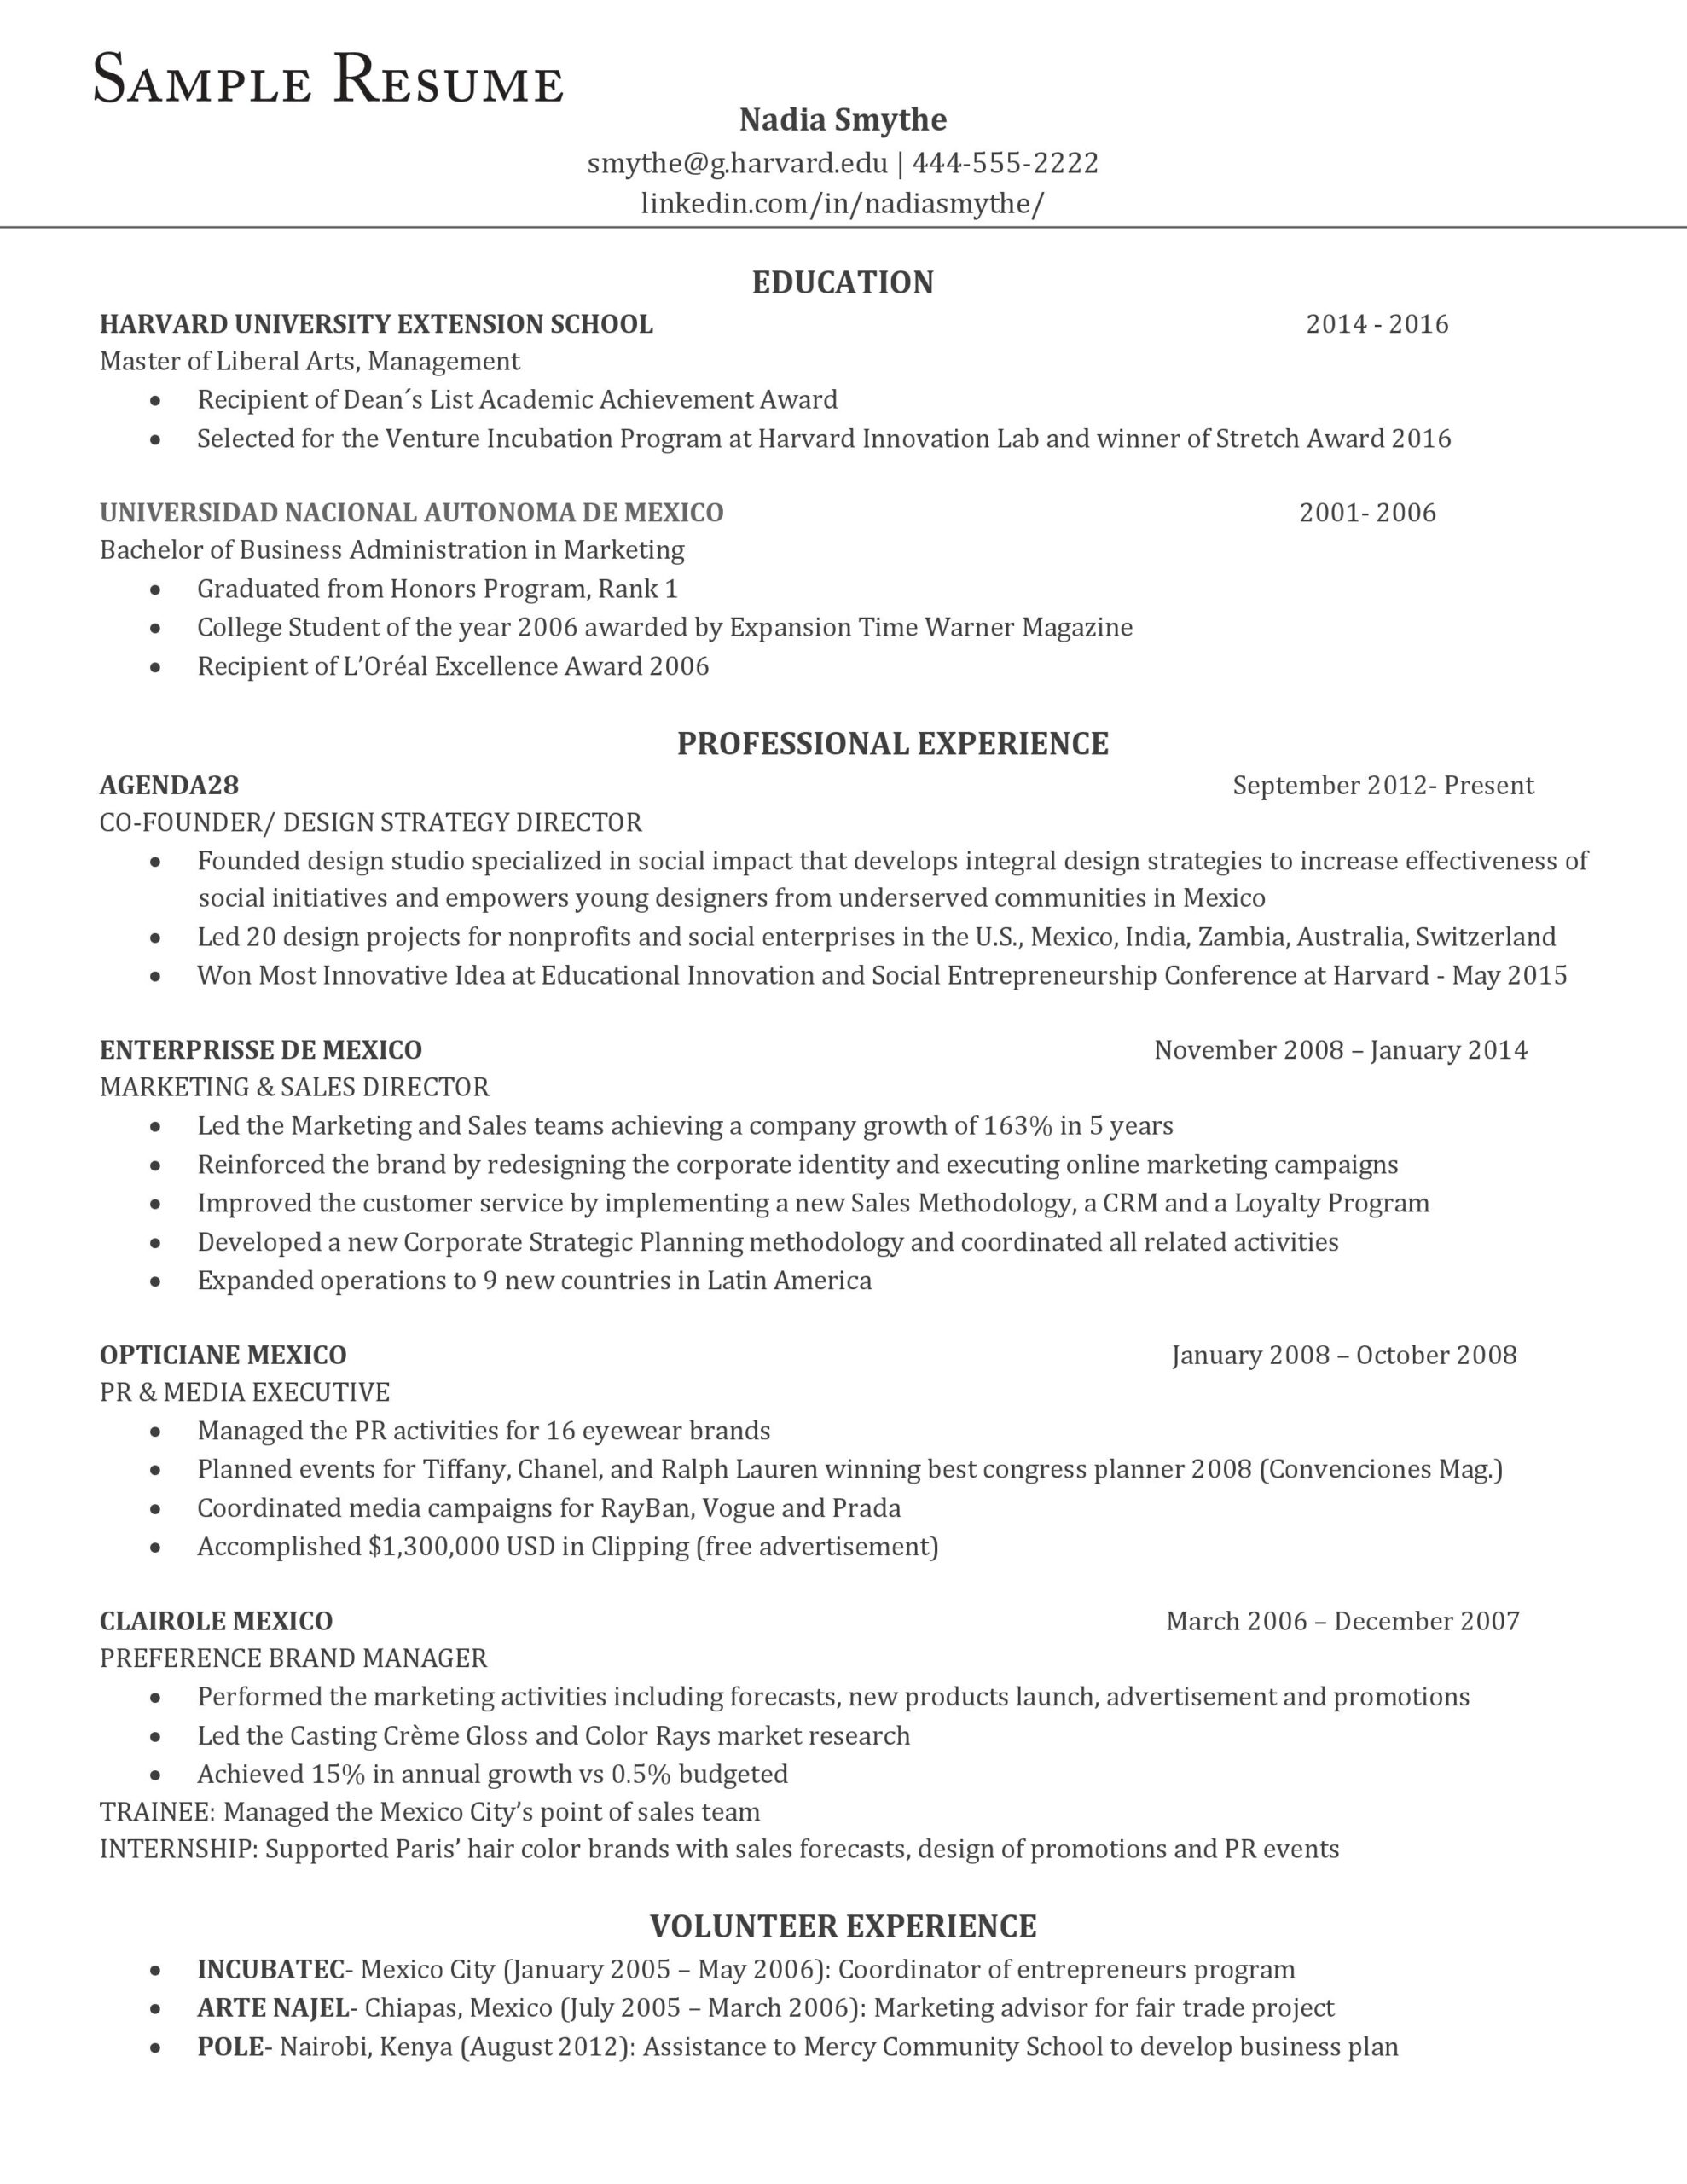 an example of the perfect resume according to harvard career experts professional high Resume Professional High School Resume